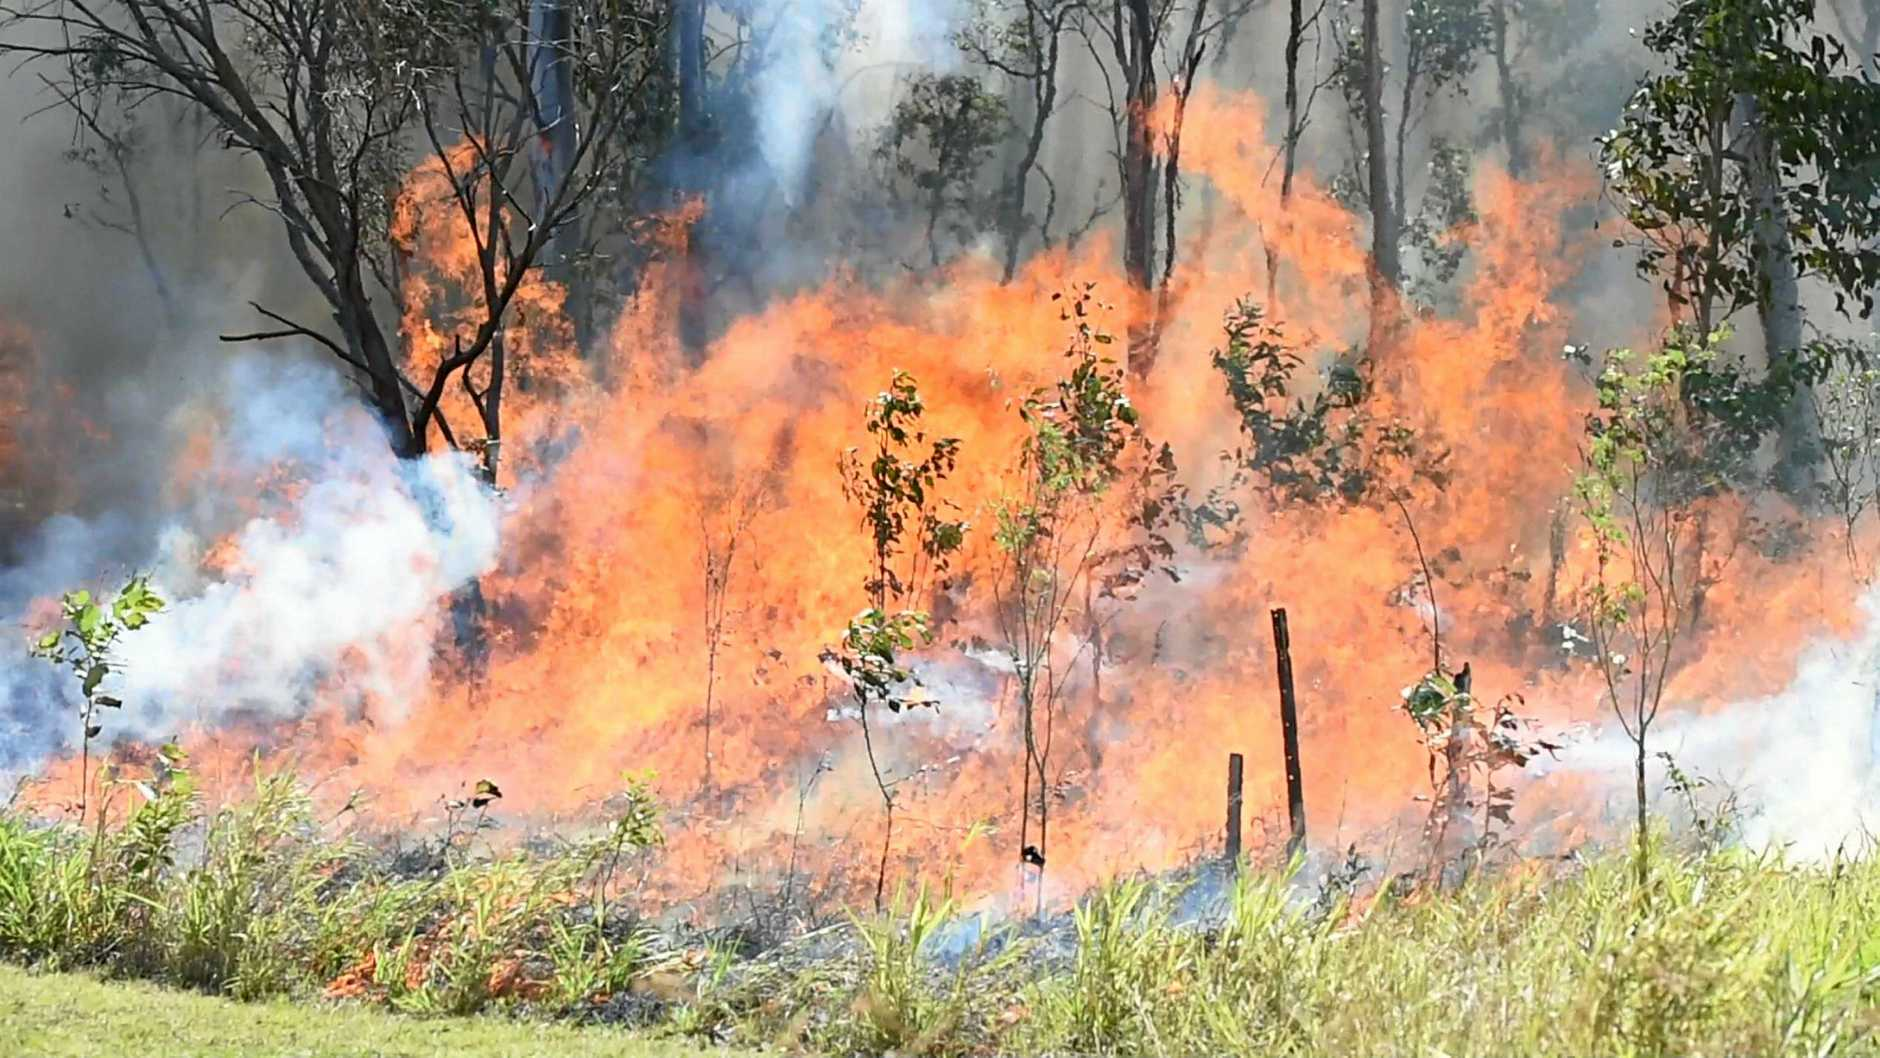 FILE PHOTO: A bushfire in scrub in Maryborough.